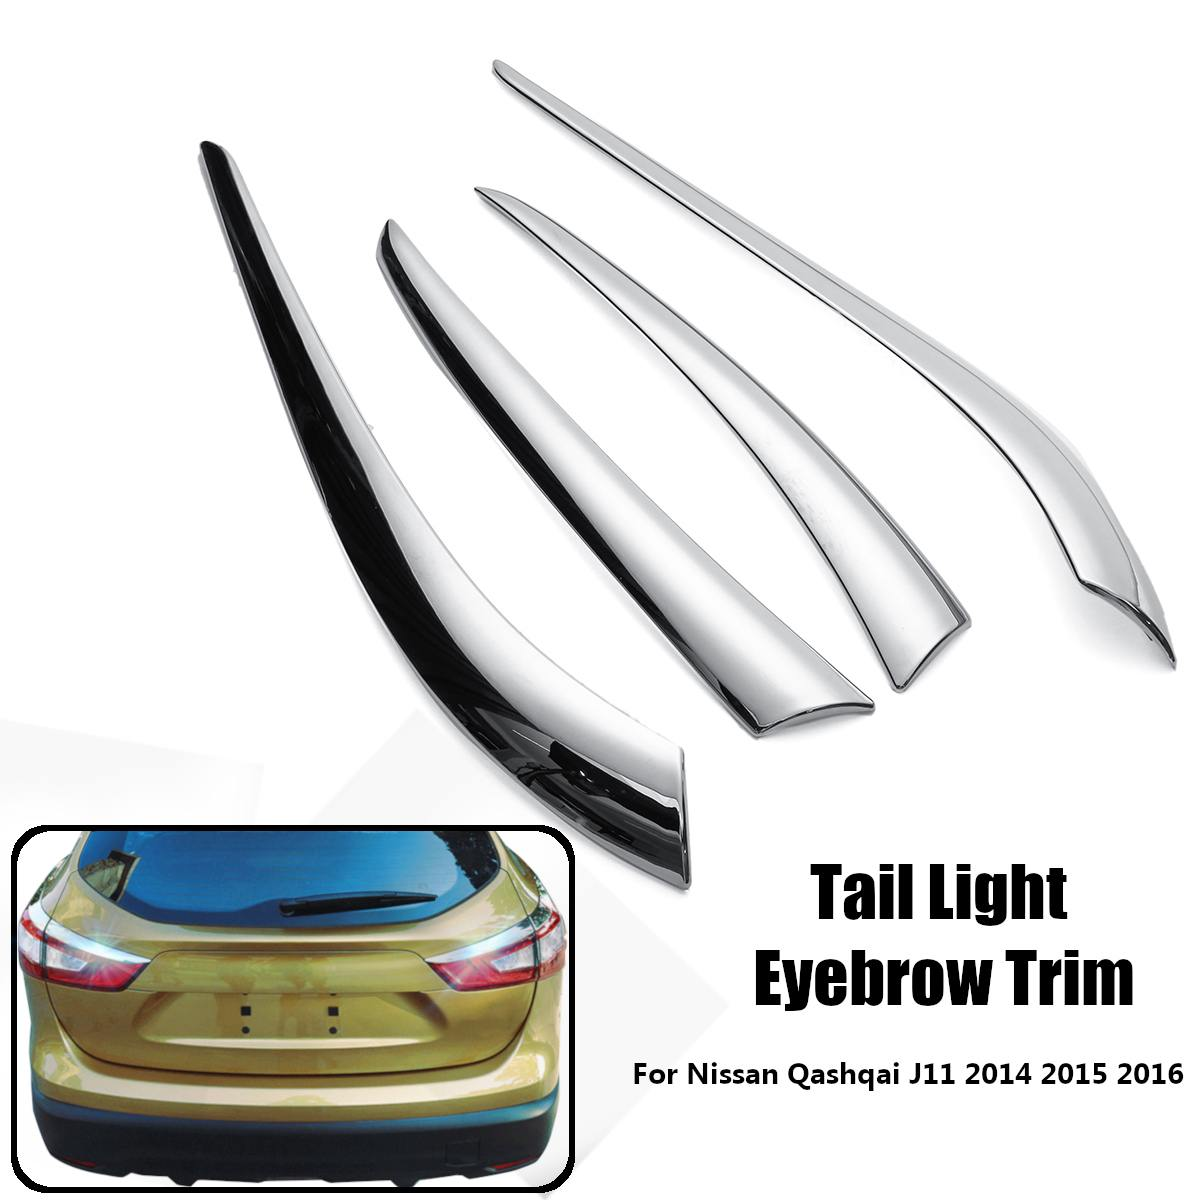 for <font><b>Nissan</b></font> <font><b>Qashqai</b></font> J11 <font><b>2014</b></font> 2015 2016 Car Styling Eyelid Car Tail Light Lamp Eyebrow Cover Trim Chrome Decoration <font><b>Accessories</b></font> image